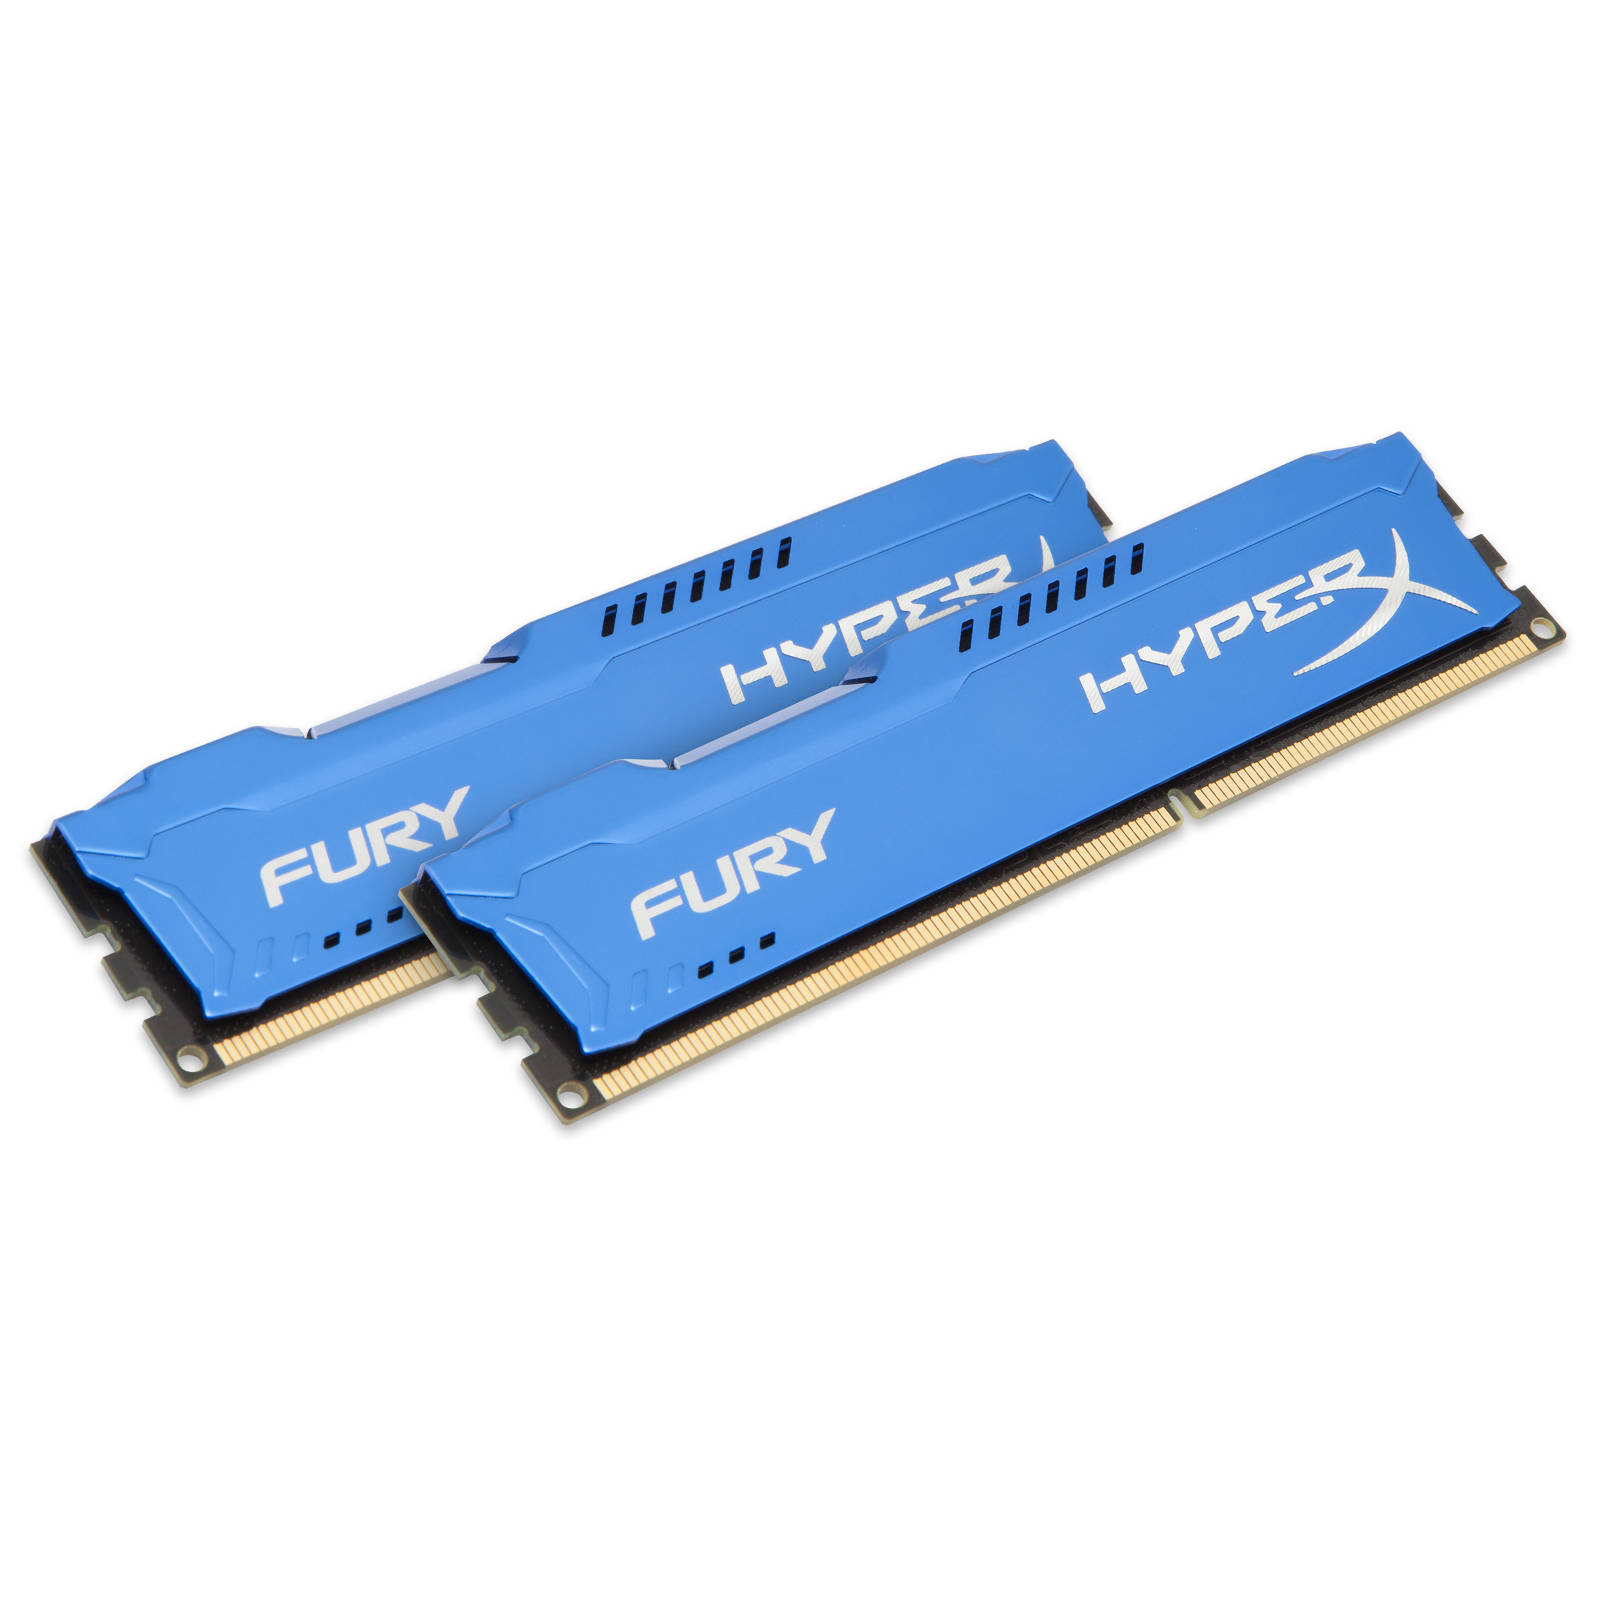 Mémoire PC HyperX Fury 8 Go (2x 4Go) DDR3 1600 MHz CL10 Kit Dual Channel RAM DDR3 PC12800 - HX316C10FK2/8